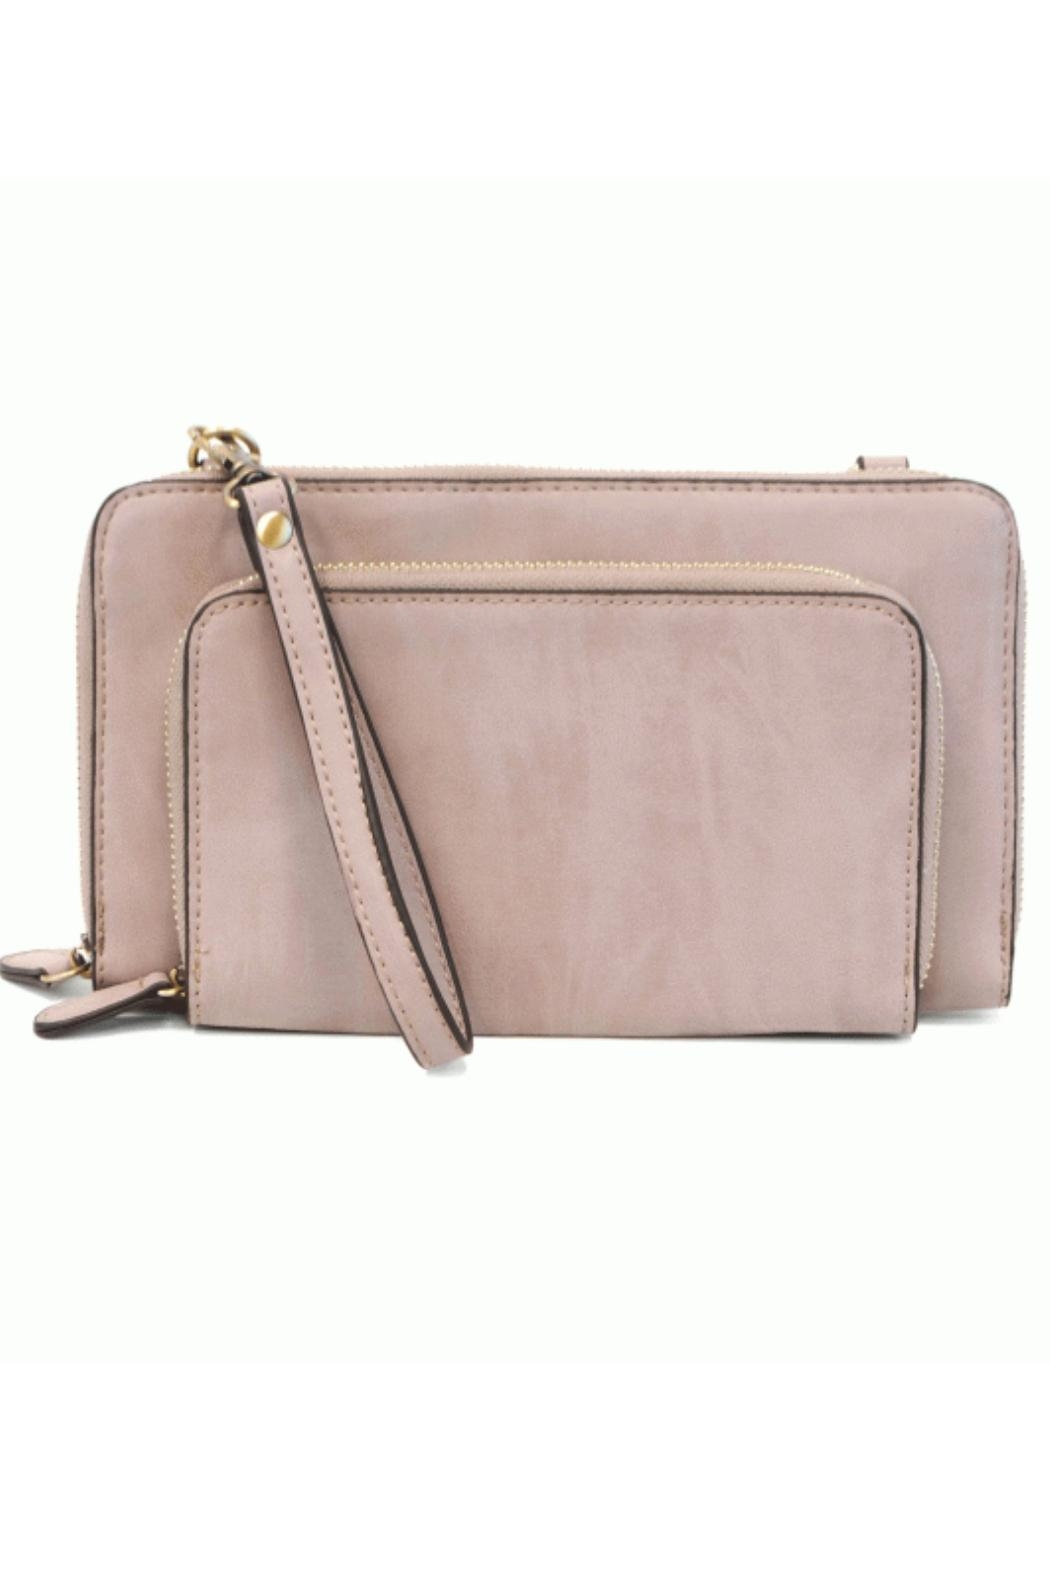 Joy Susan Brushed Wisteria Crossbody - Front Cropped Image